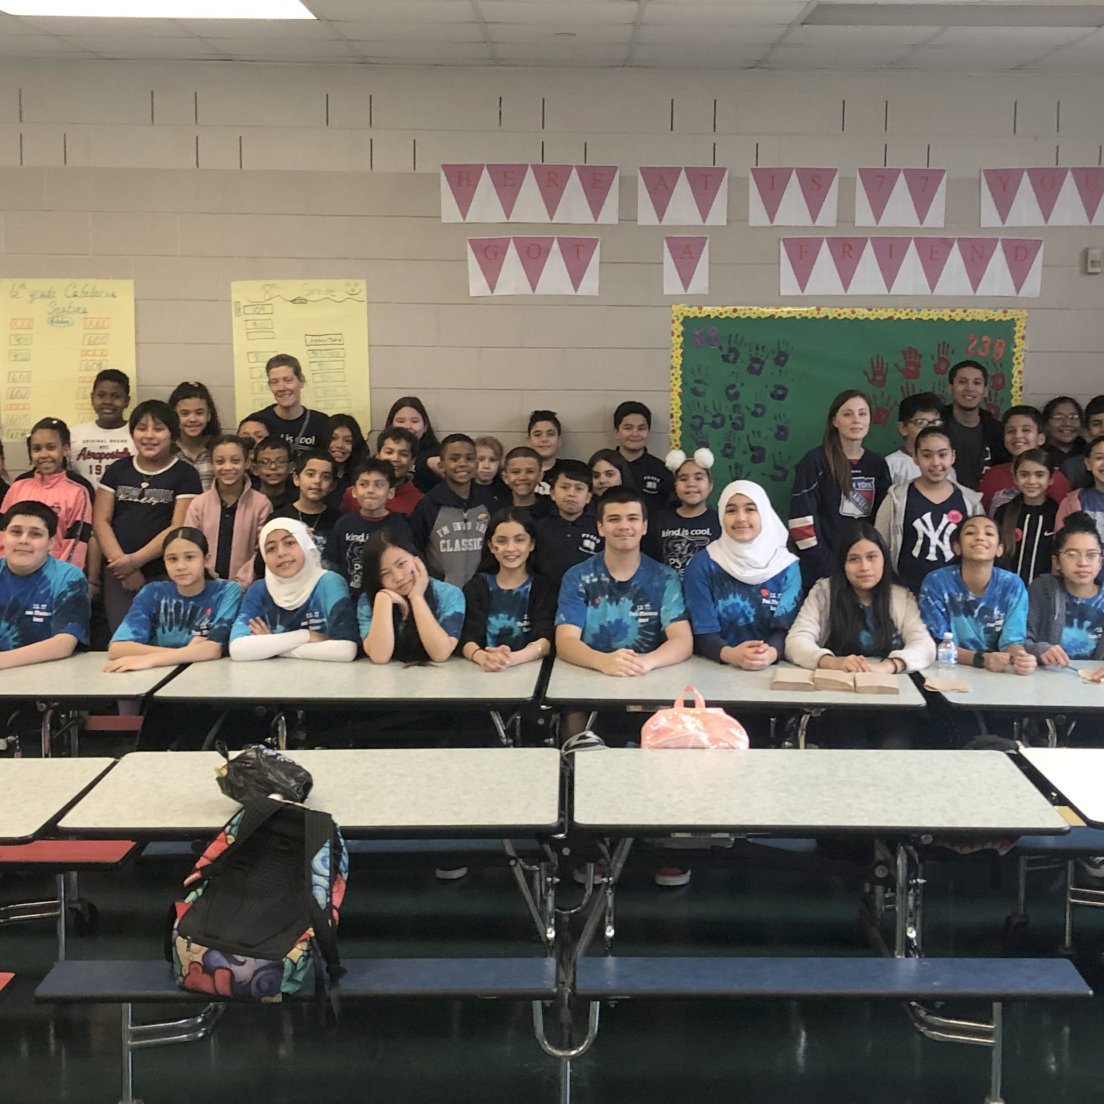 Ridgewood's I.S. 77 brings students from P.S. 68 and P.S. 239 together for No One Eats Alone Day